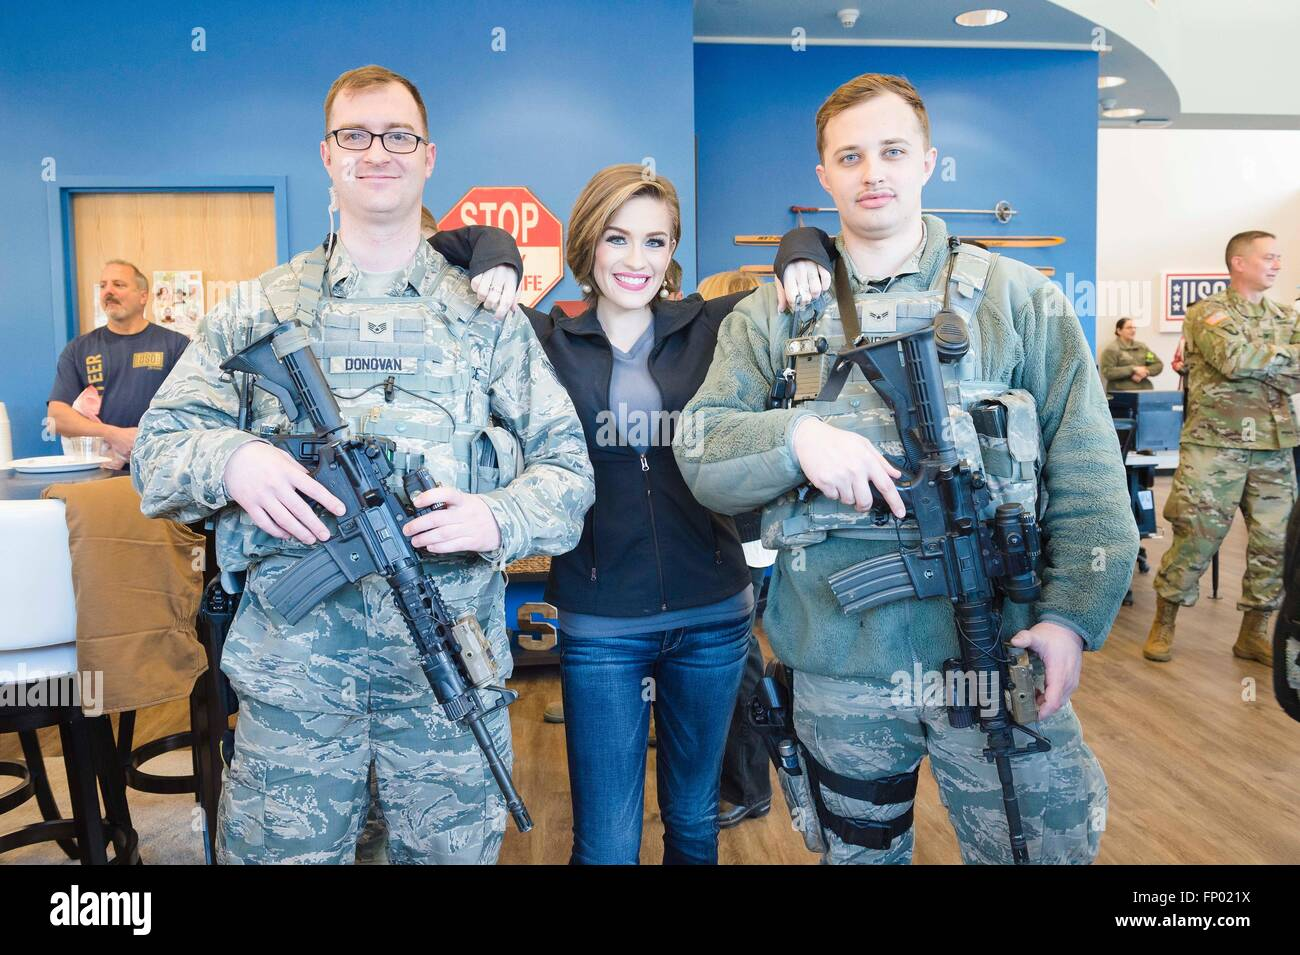 Betty Cantrell, Miss America 2016, poses with armed airmen during a visit to service members as part of the USO - Stock Image